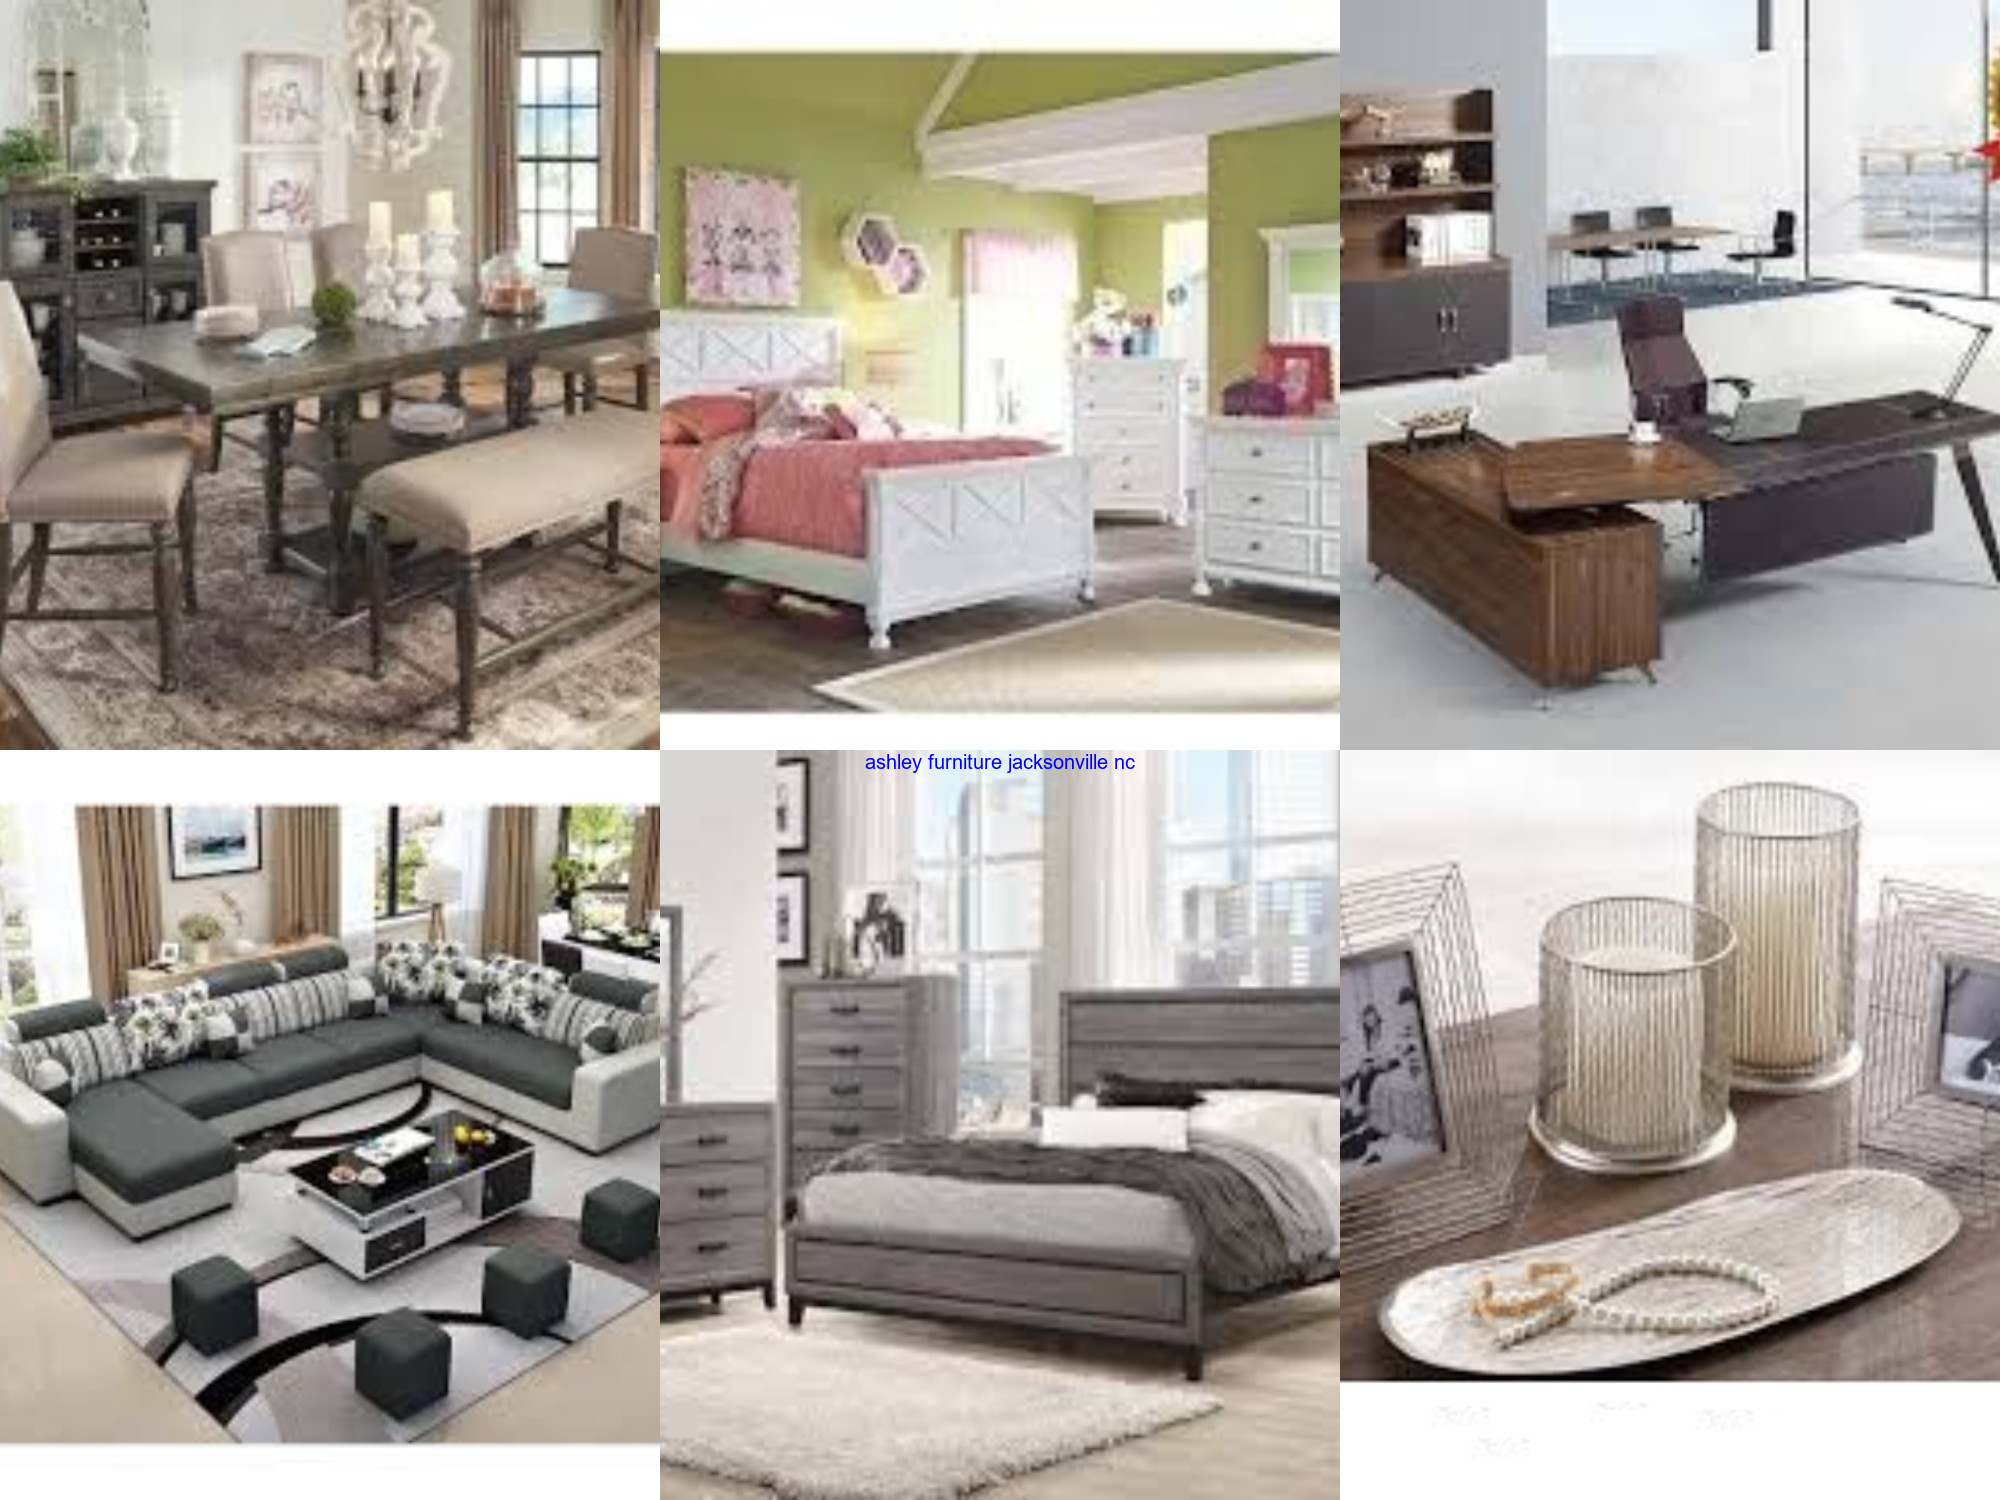 Ashley Furniture Jacksonville Nc I Might Suggest You To Try This